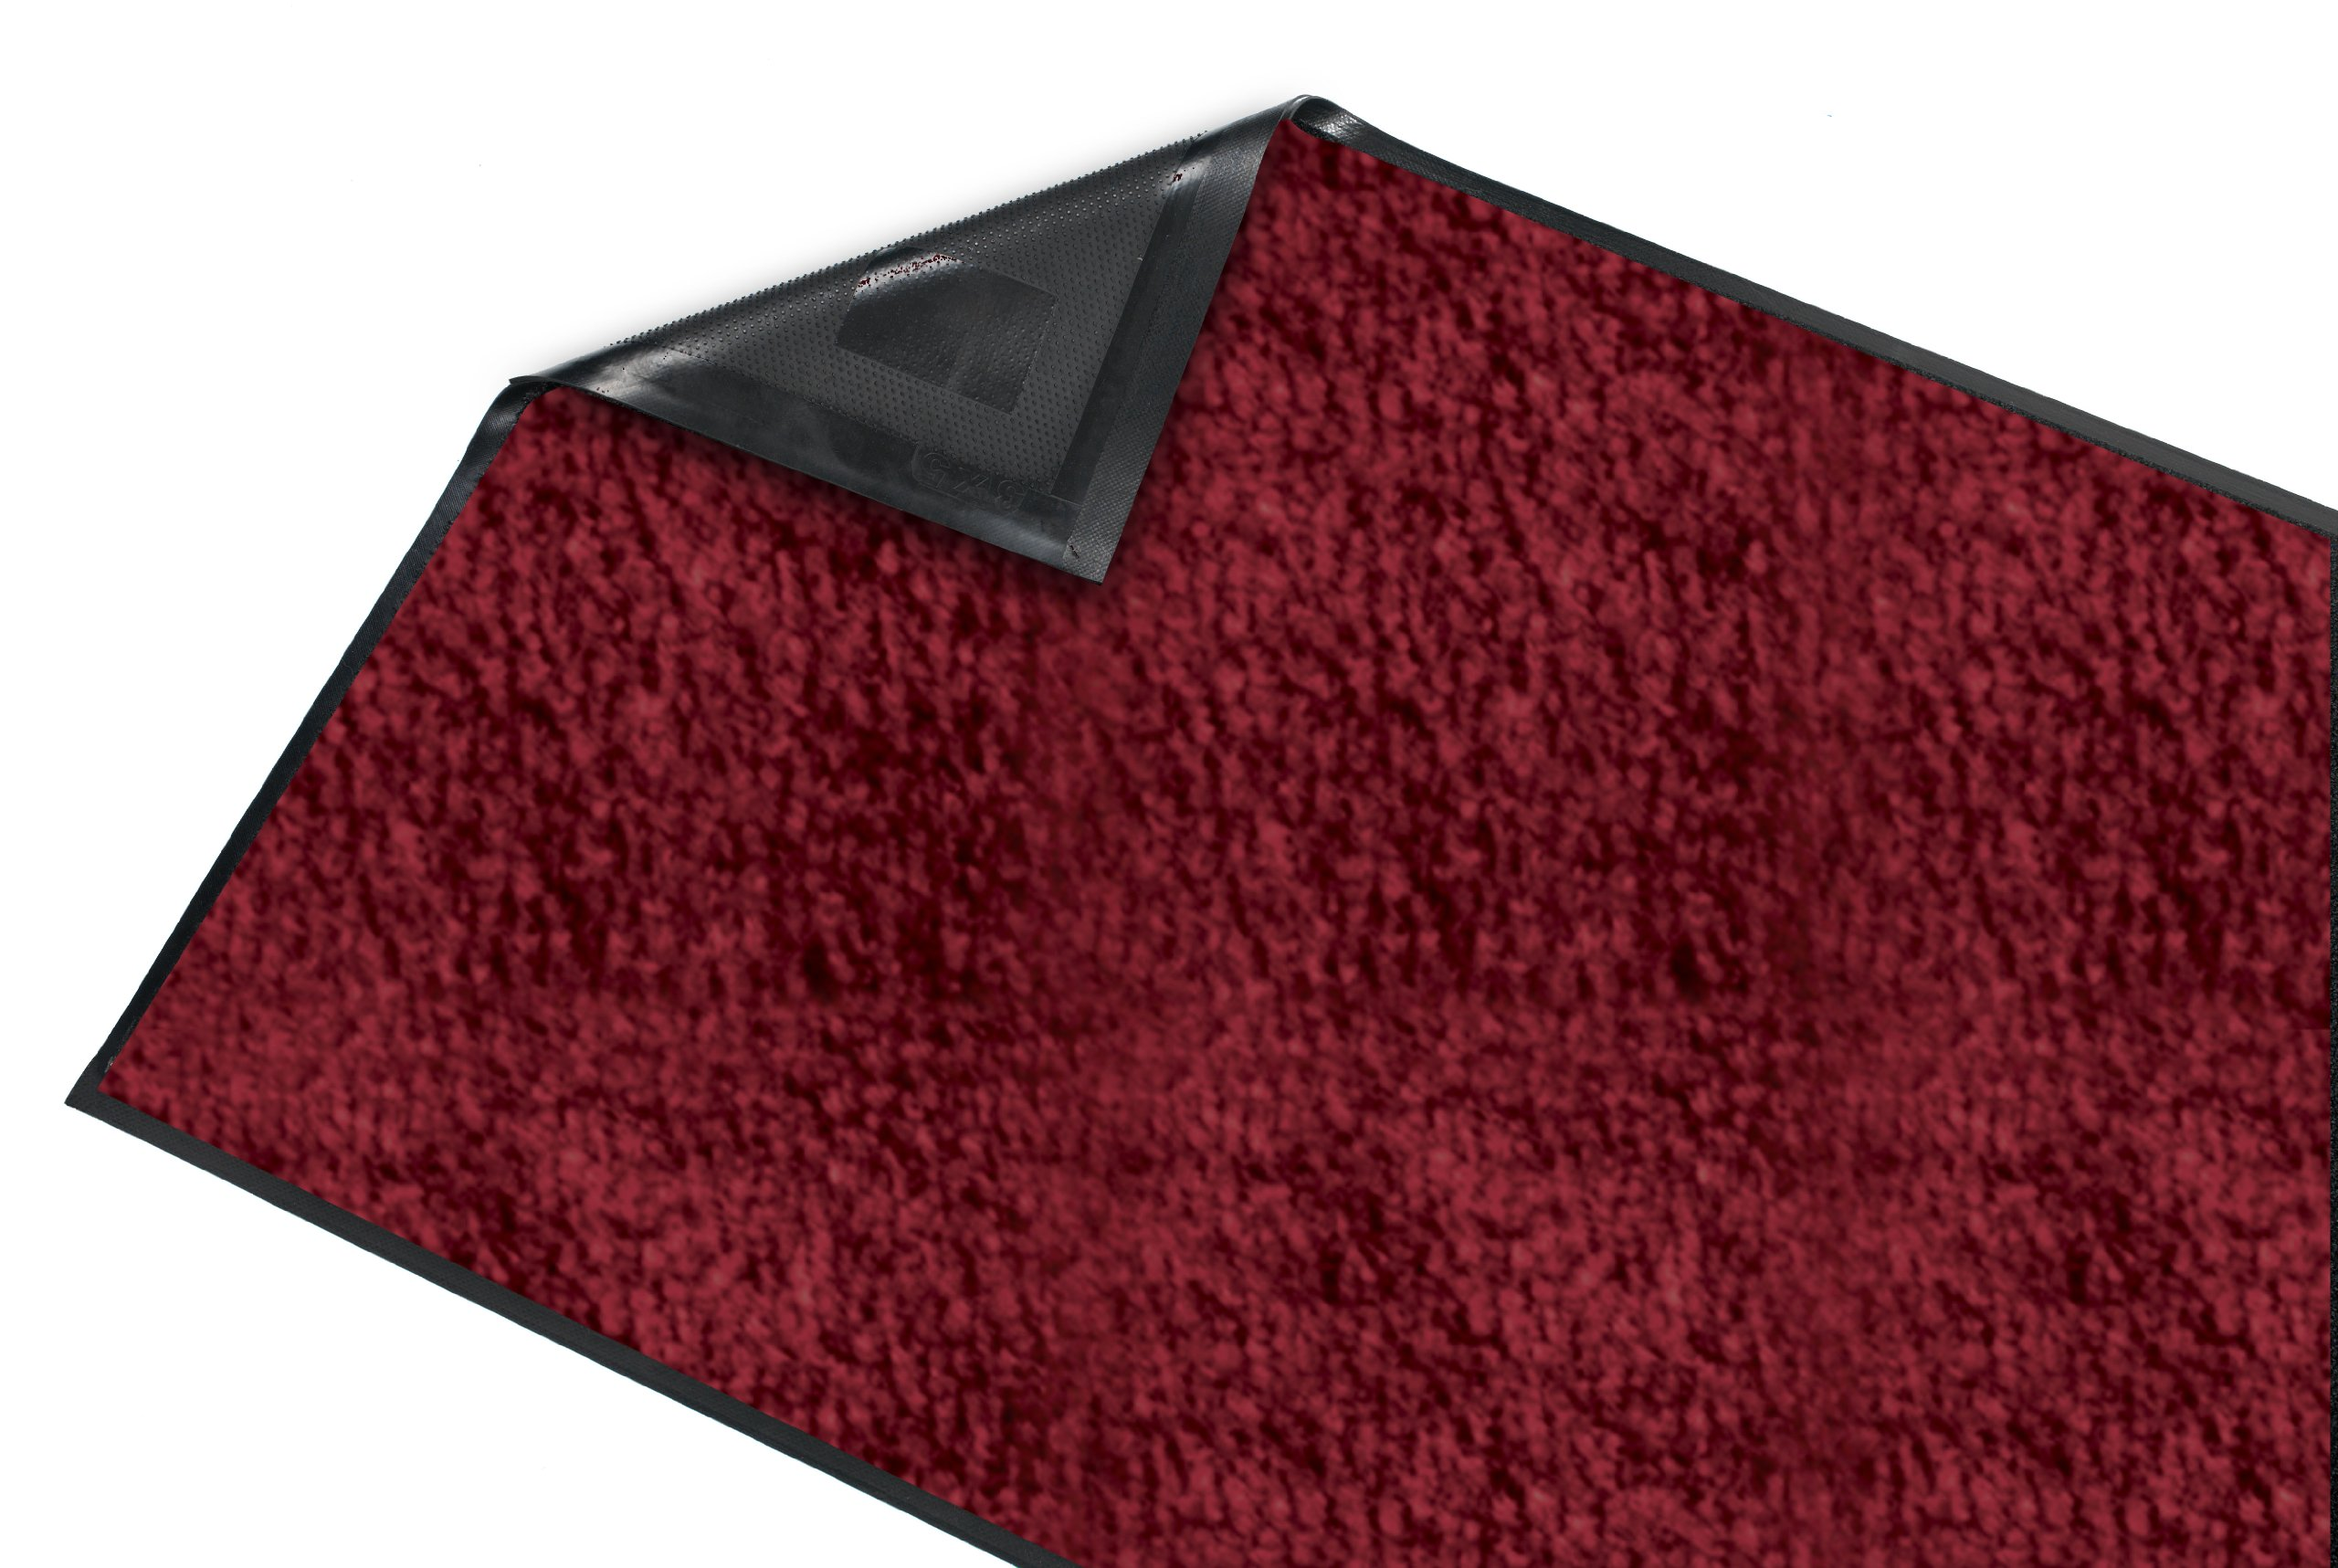 Guardian Platinum Series Indoor Wiper Floor Mat, Rubber with Nylon Carpet, 6'x8', Burgundy by Guardian (Image #4)